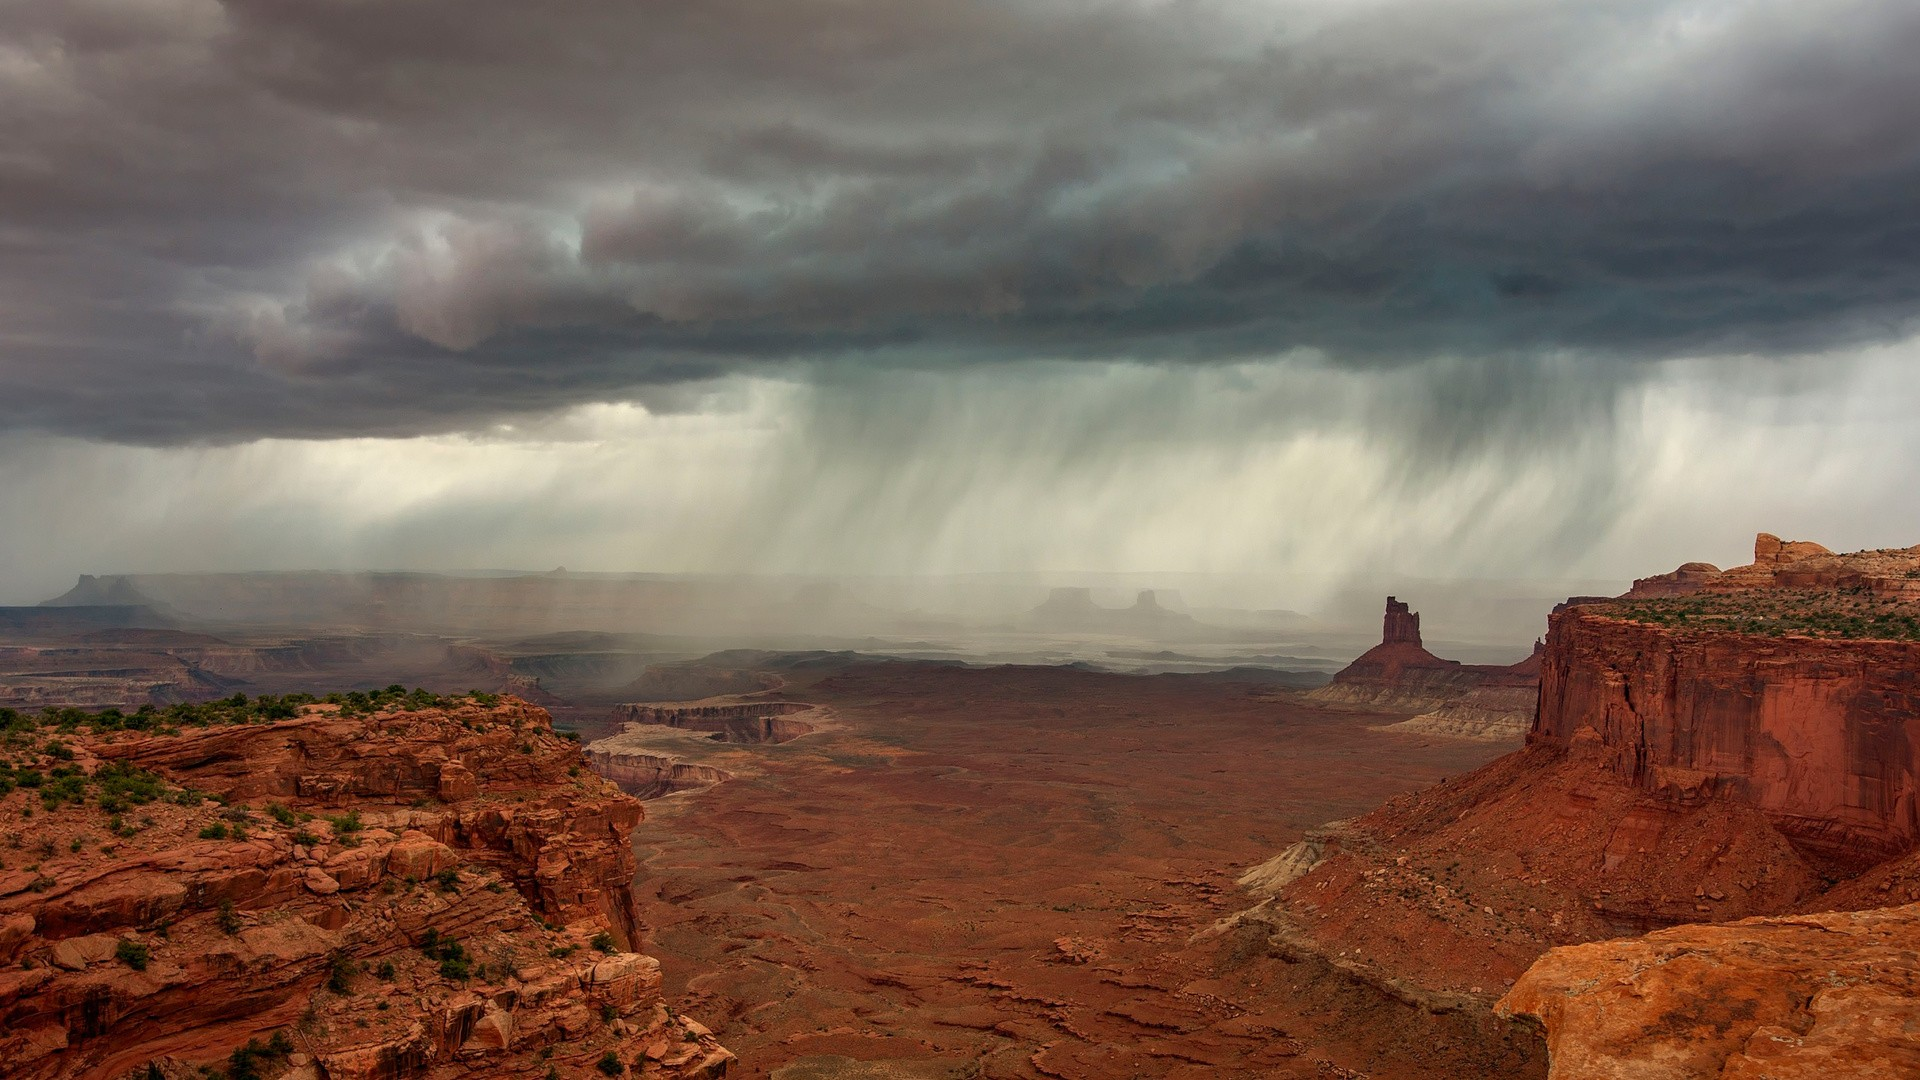 General 1920x1080 landscape nature sky rock USA storm desert rain rock formation clouds